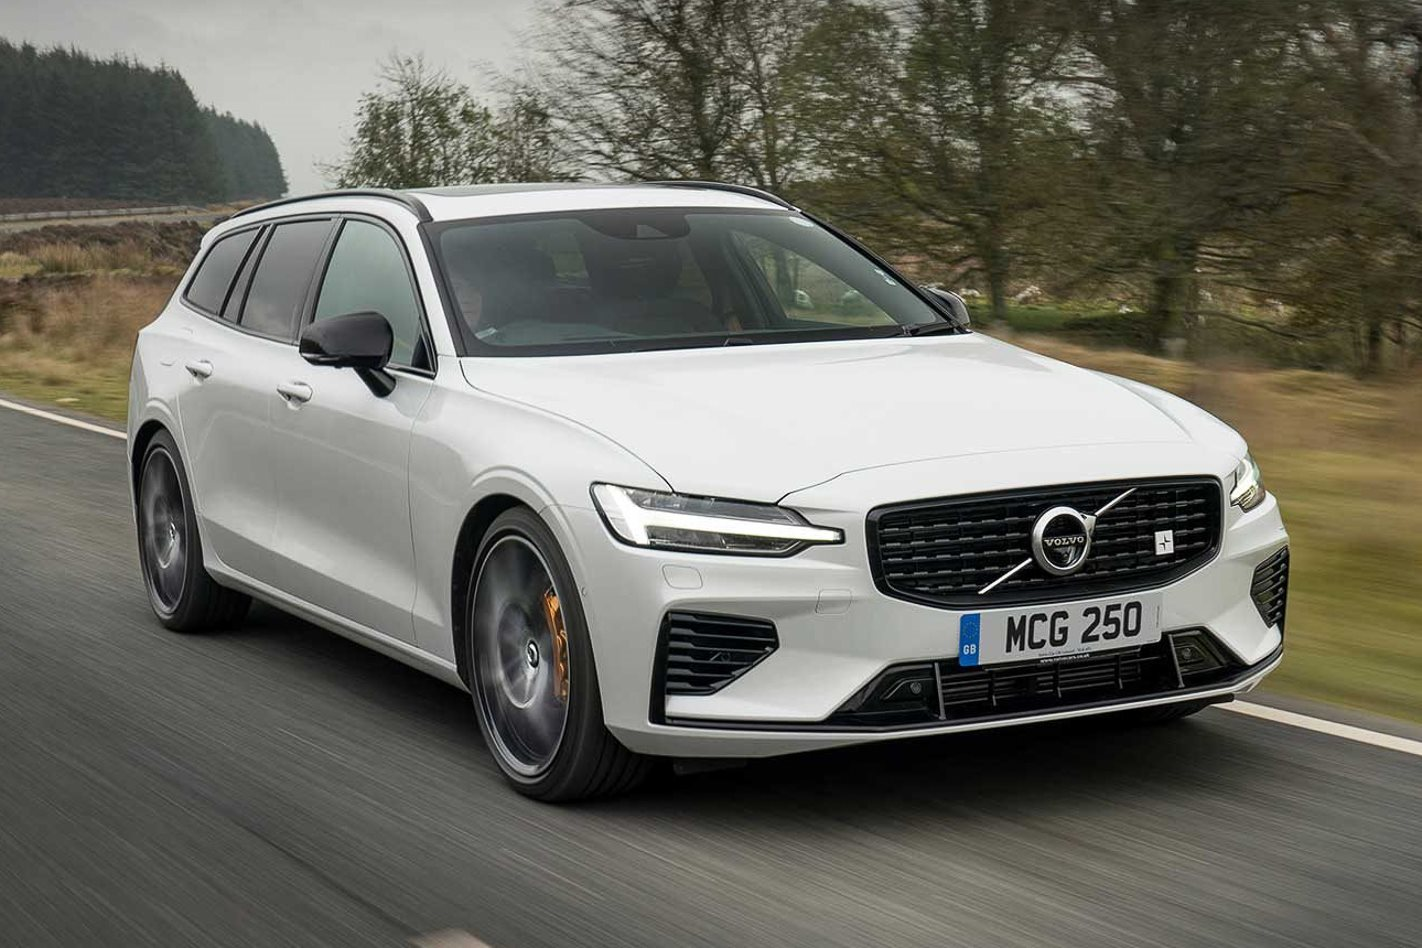 Volvo's 180km/h top speed limit now standard on all cars